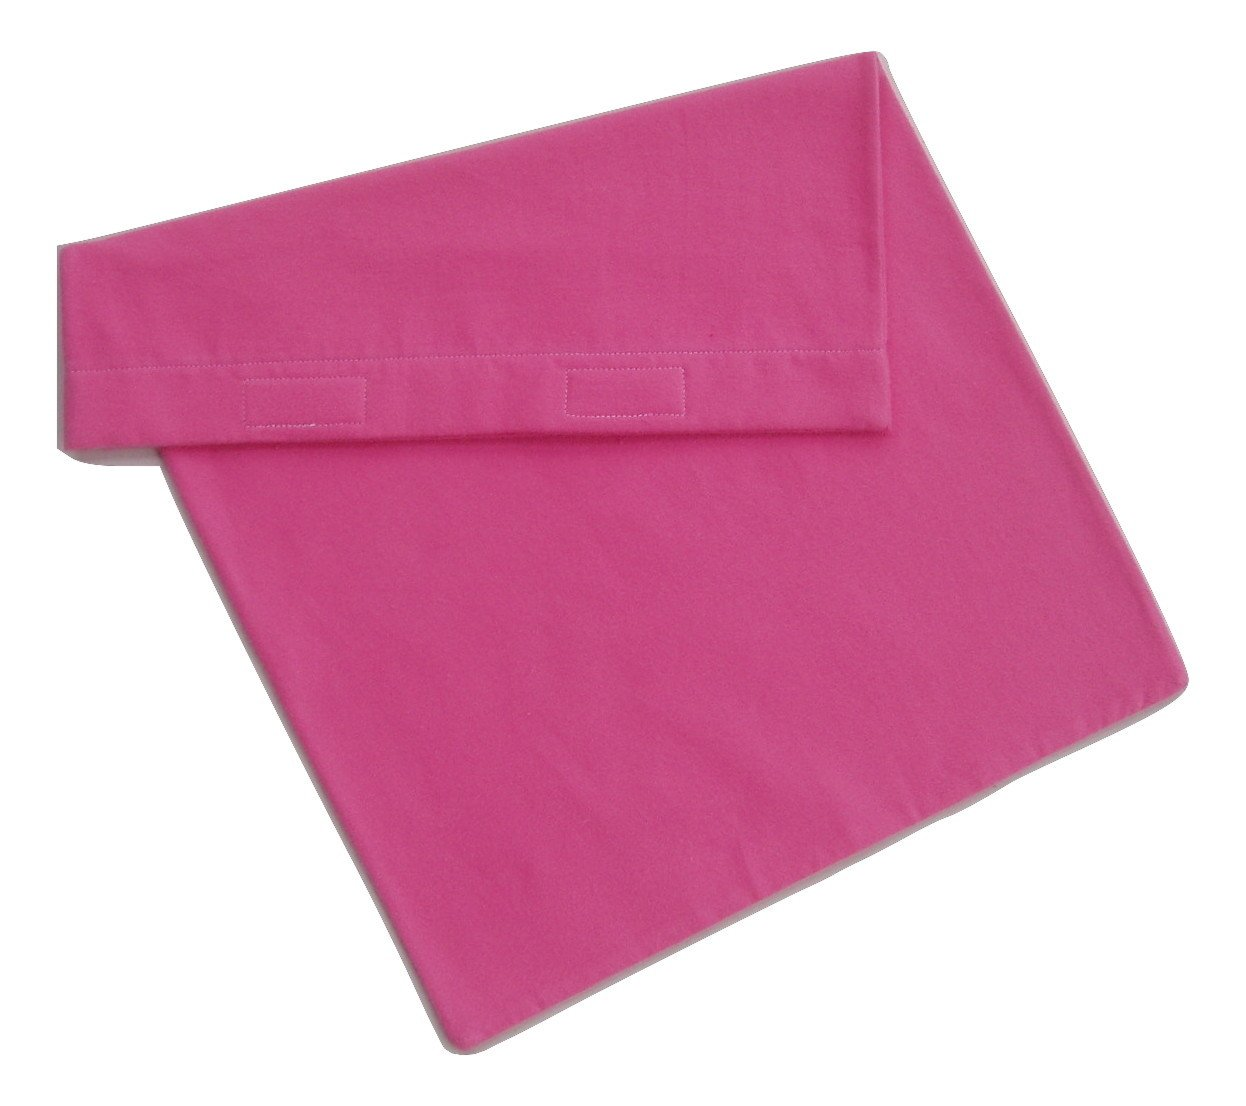 """Pink Replacement Cover (or pillowcase) for 12""""x24"""" Heating Pad or Pillow 100% Soft Cotton Flannel"""